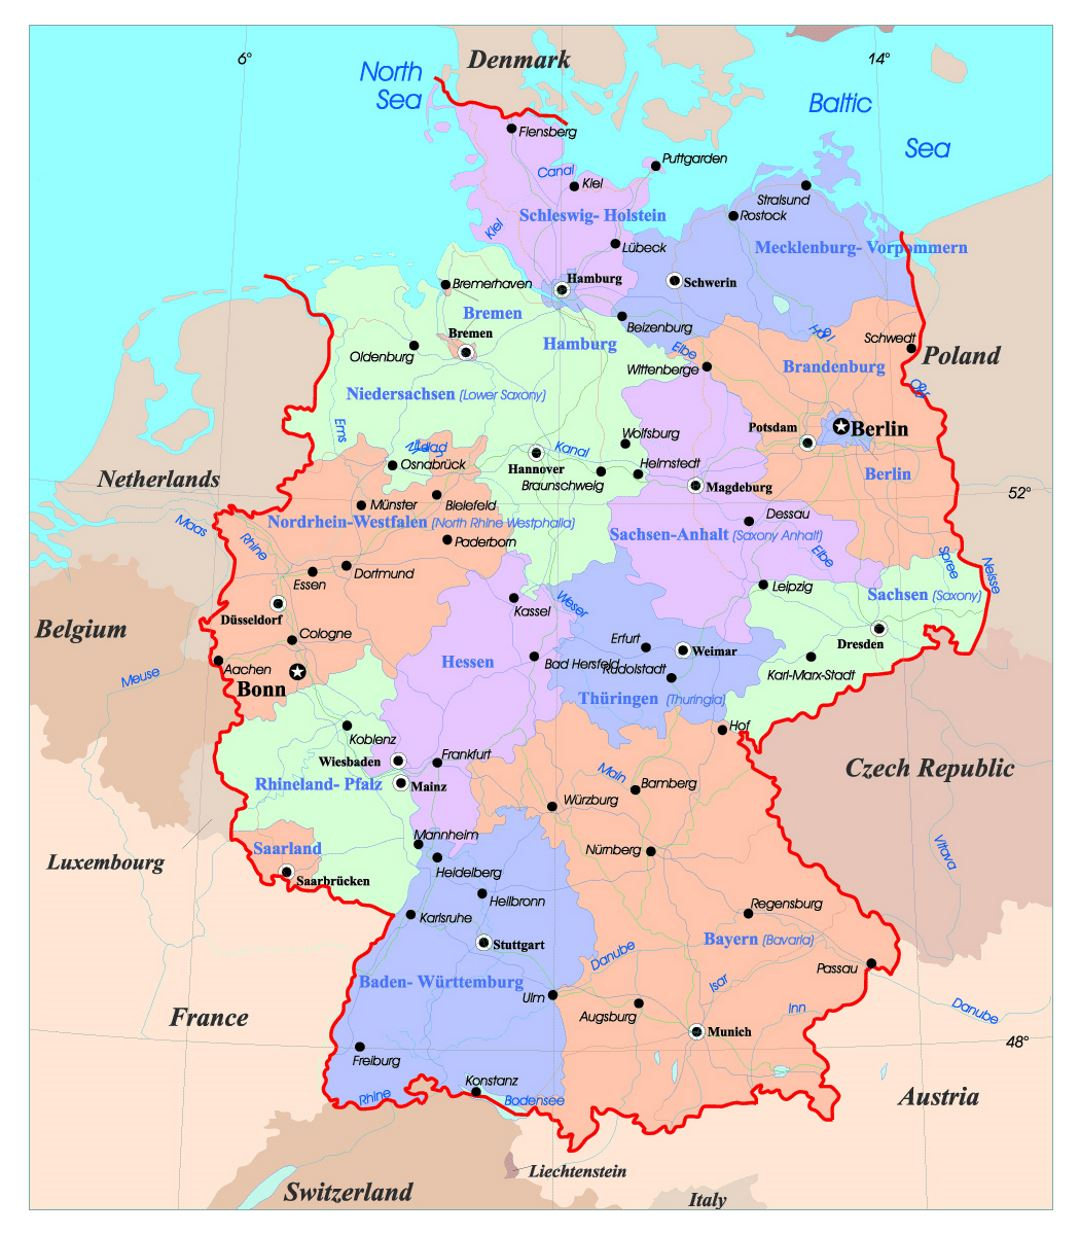 Detailed Administrative Map Of Germany With Major Cities Germany - Austria major cities map